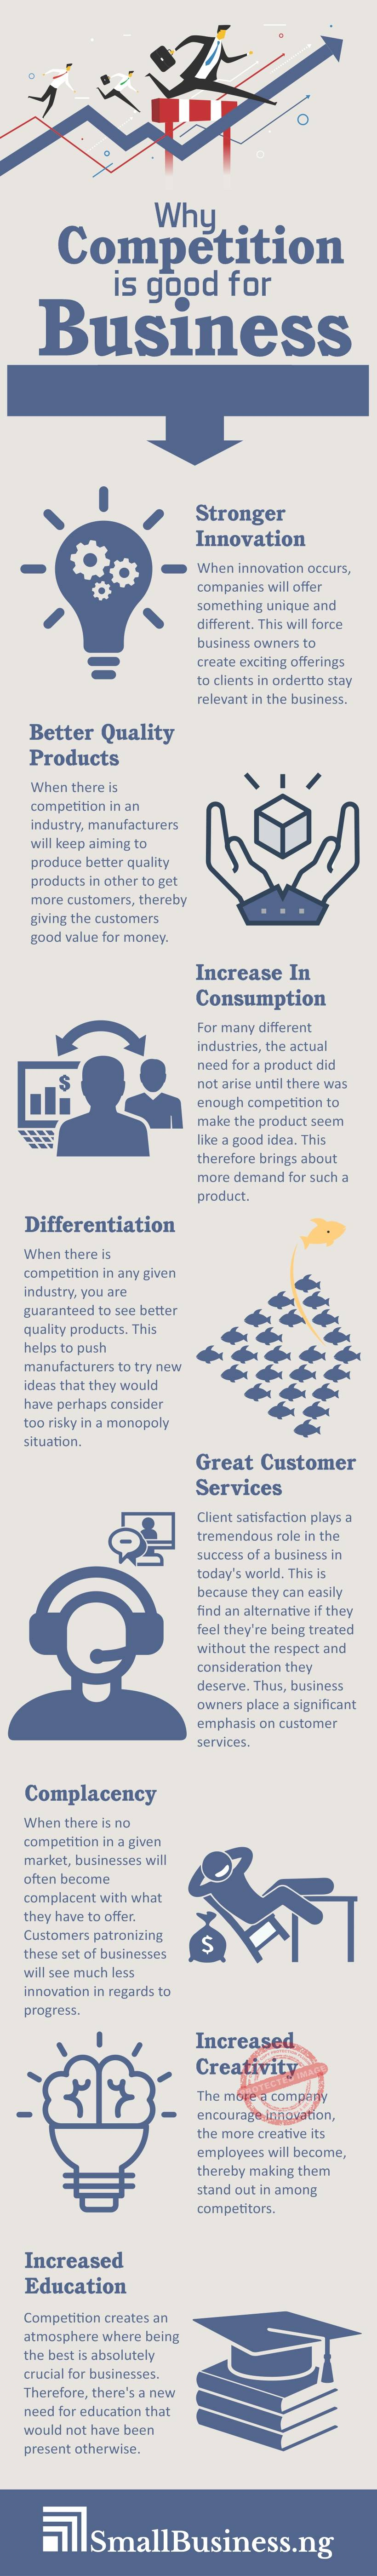 Why Competition is Good for Business infographic